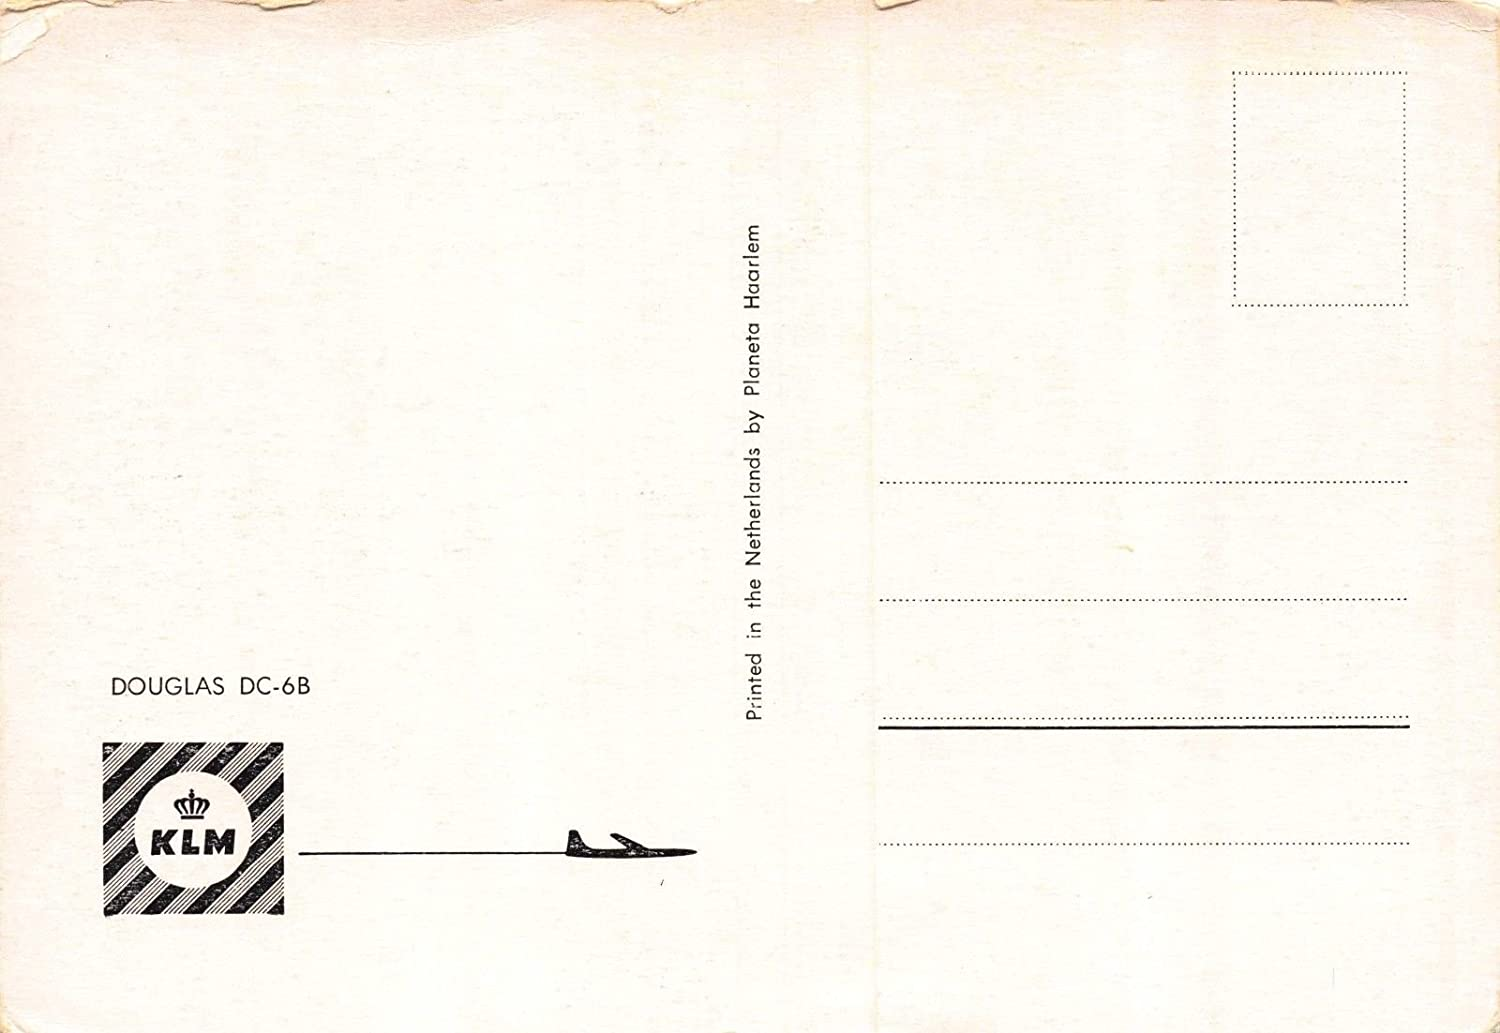 Amazoncom Postcard KLM Douglas DCB Royal Dutch Airlines Airplane - Invoice klm